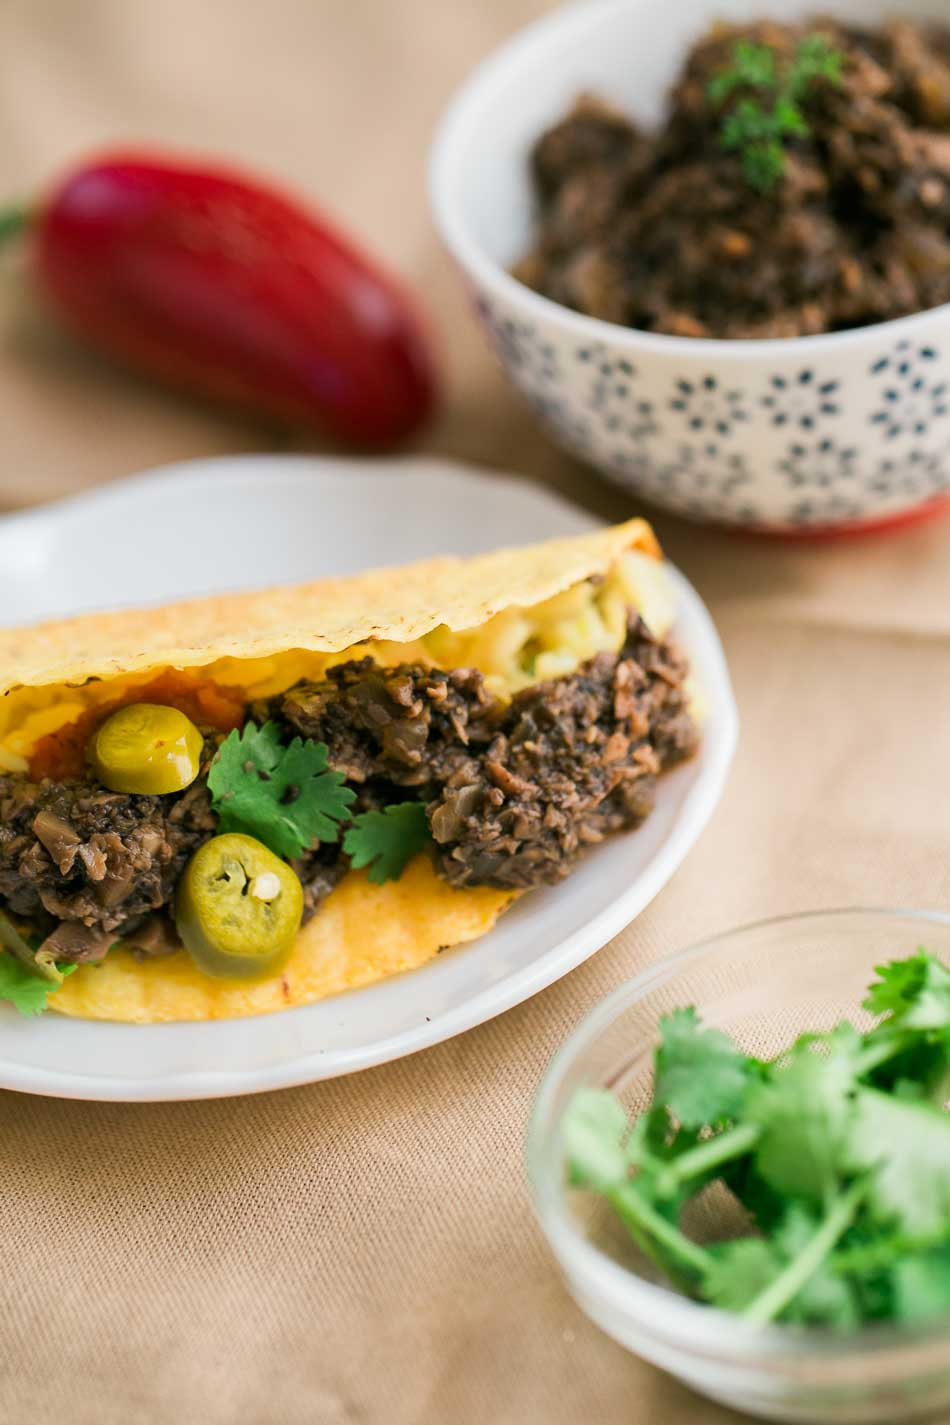 These spicy vegan beef tacos are super delicious!